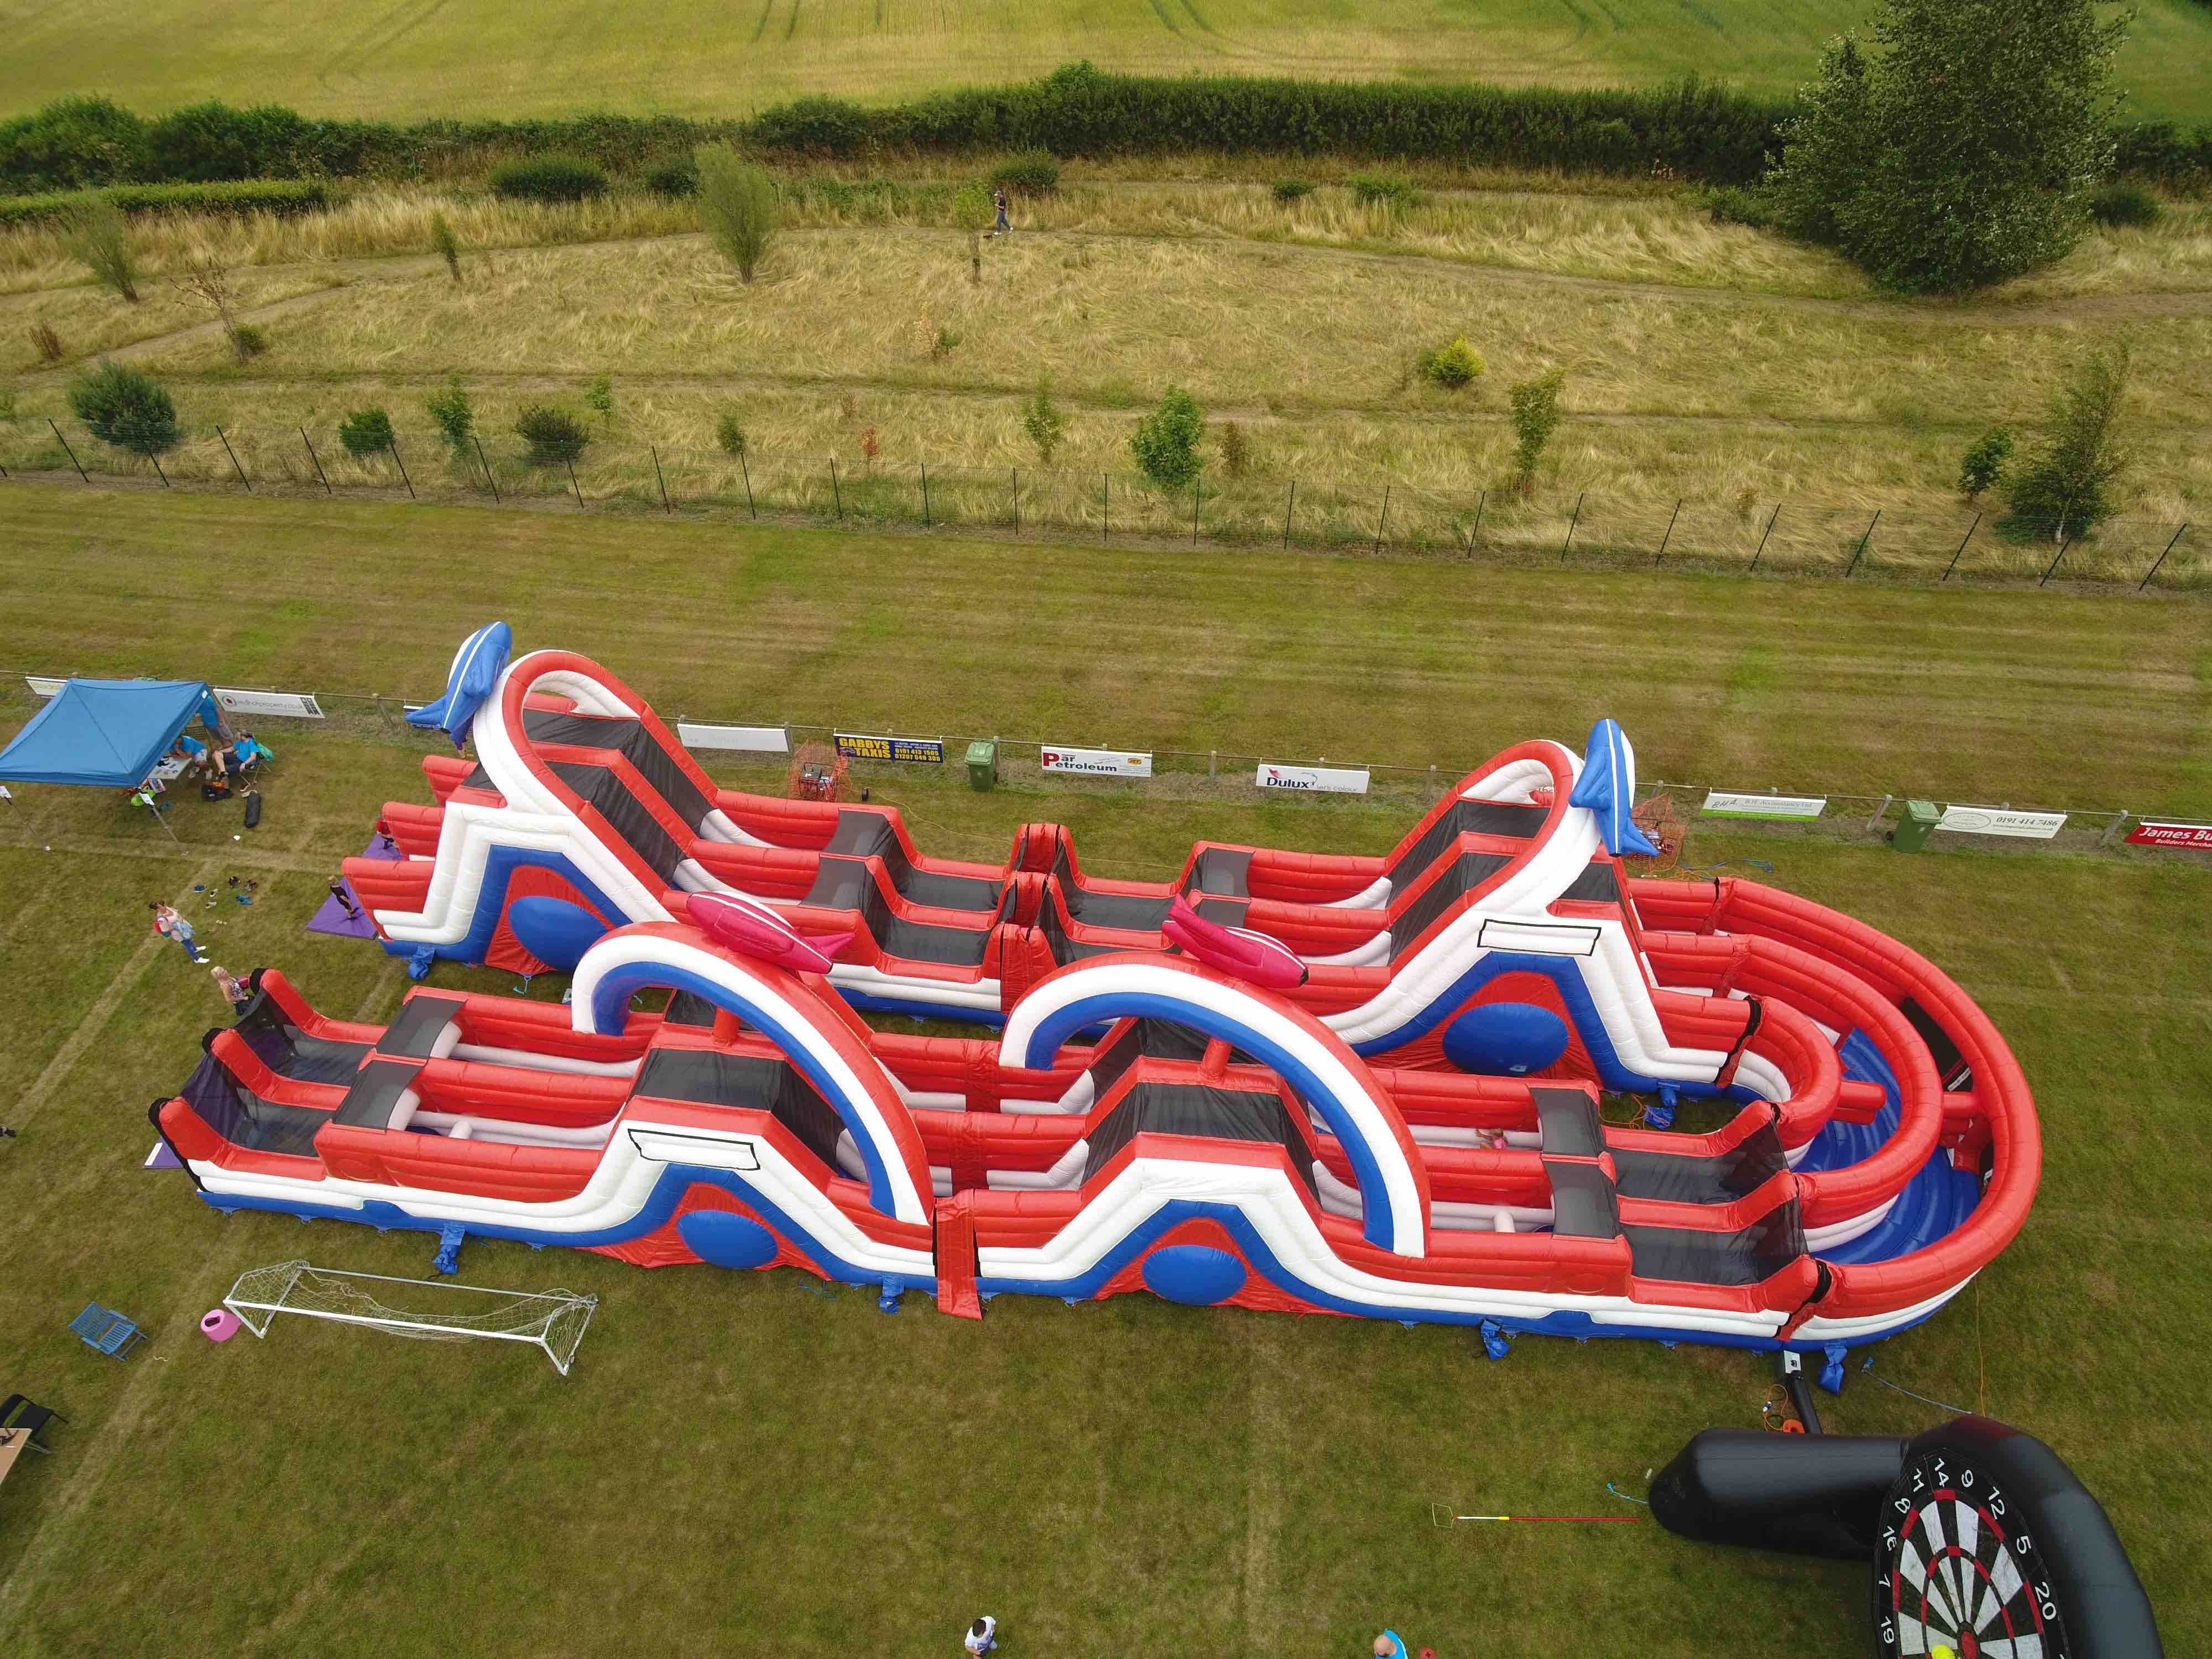 Giant 220ft inflatable assault / obstacle course